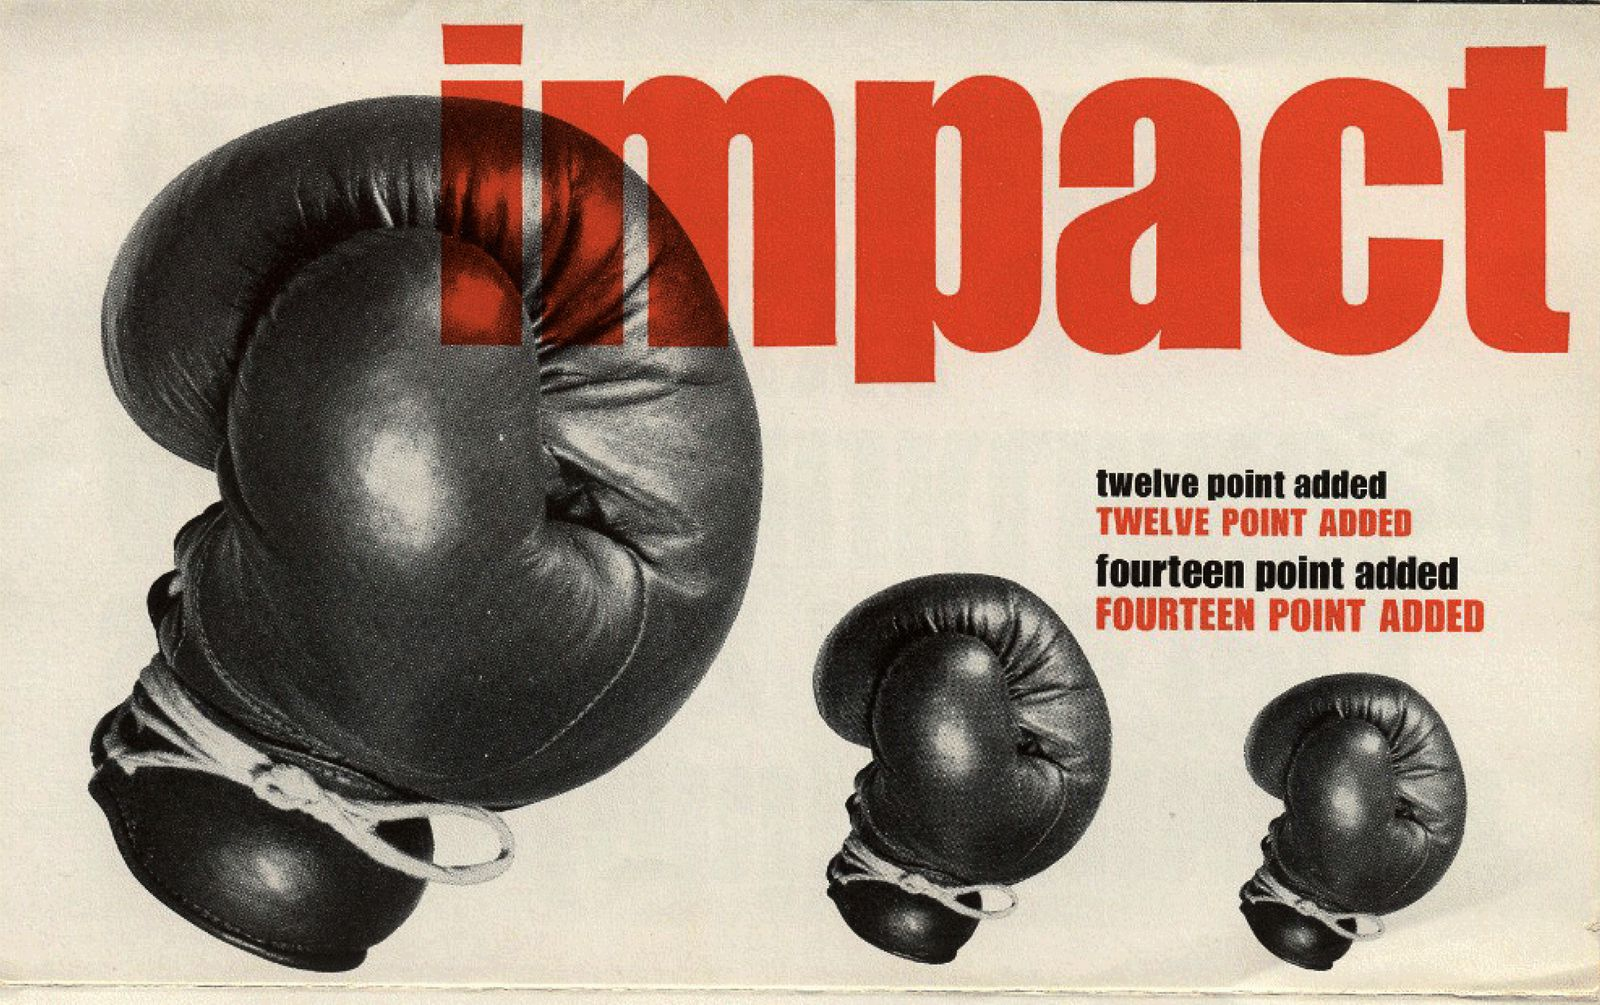 This is from the original Stephenson Blake ad for Impact.